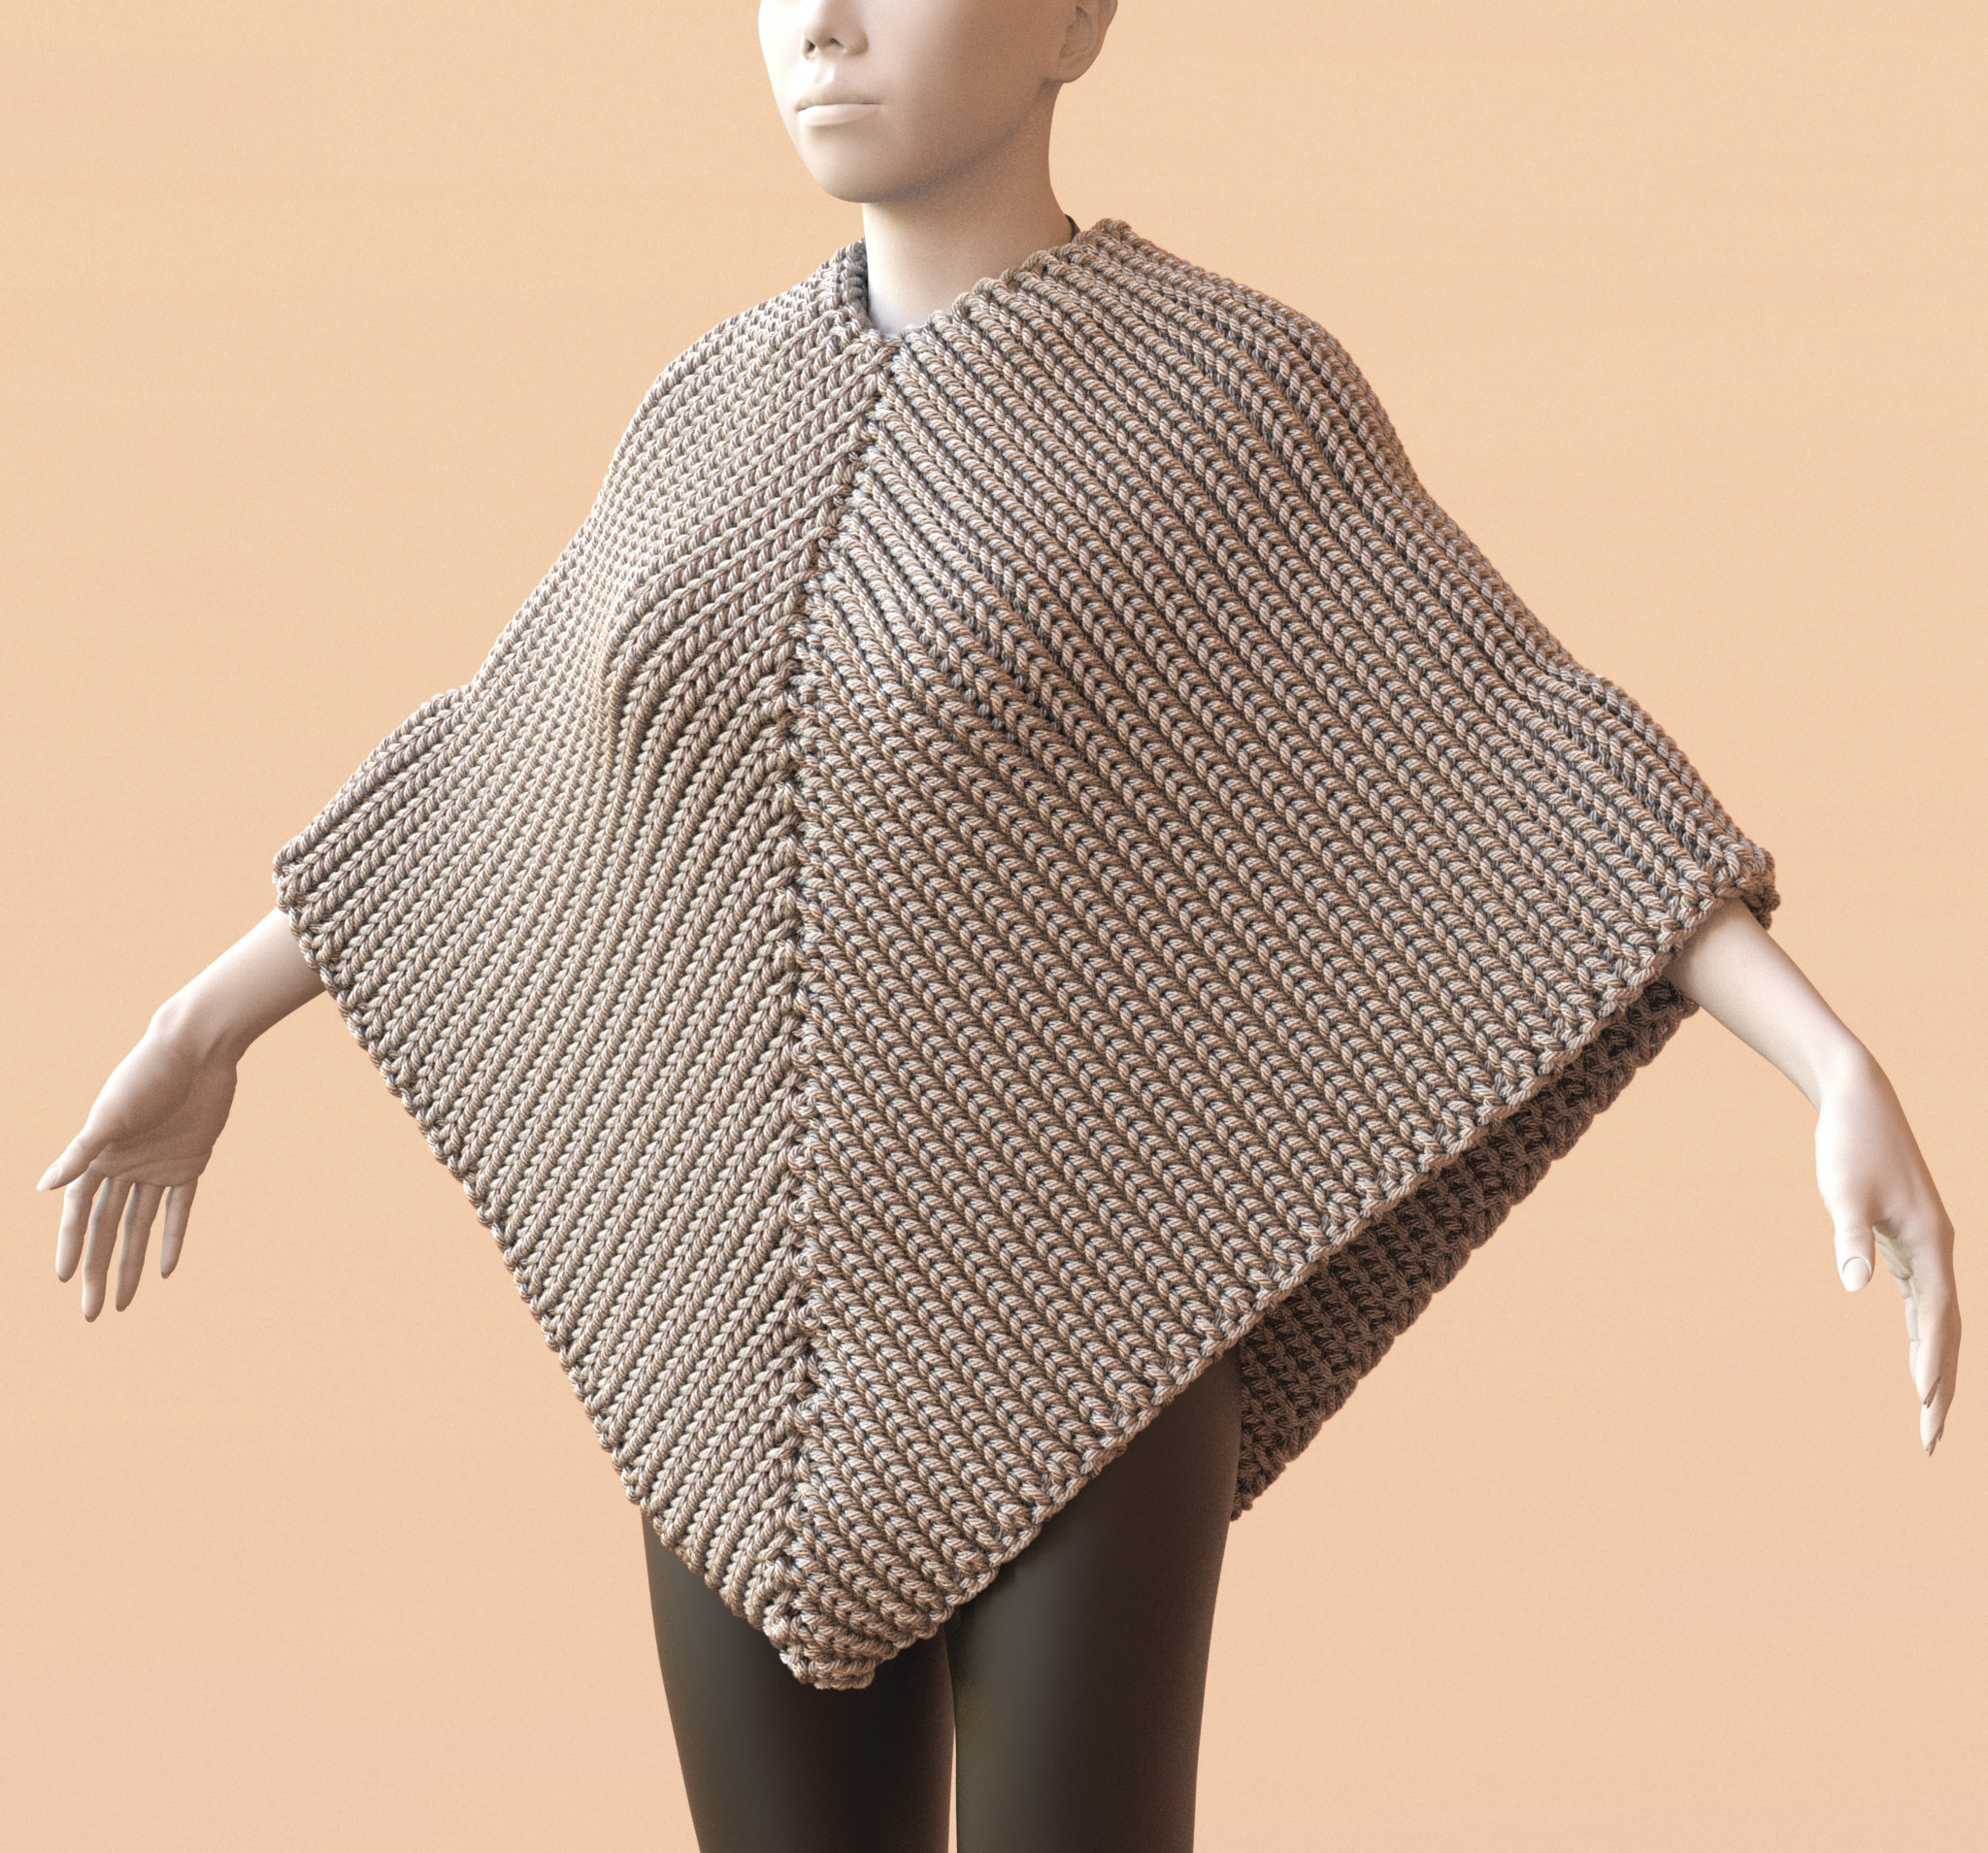 Stitch Meshes For Modeling Knitted Clothing With Yarn